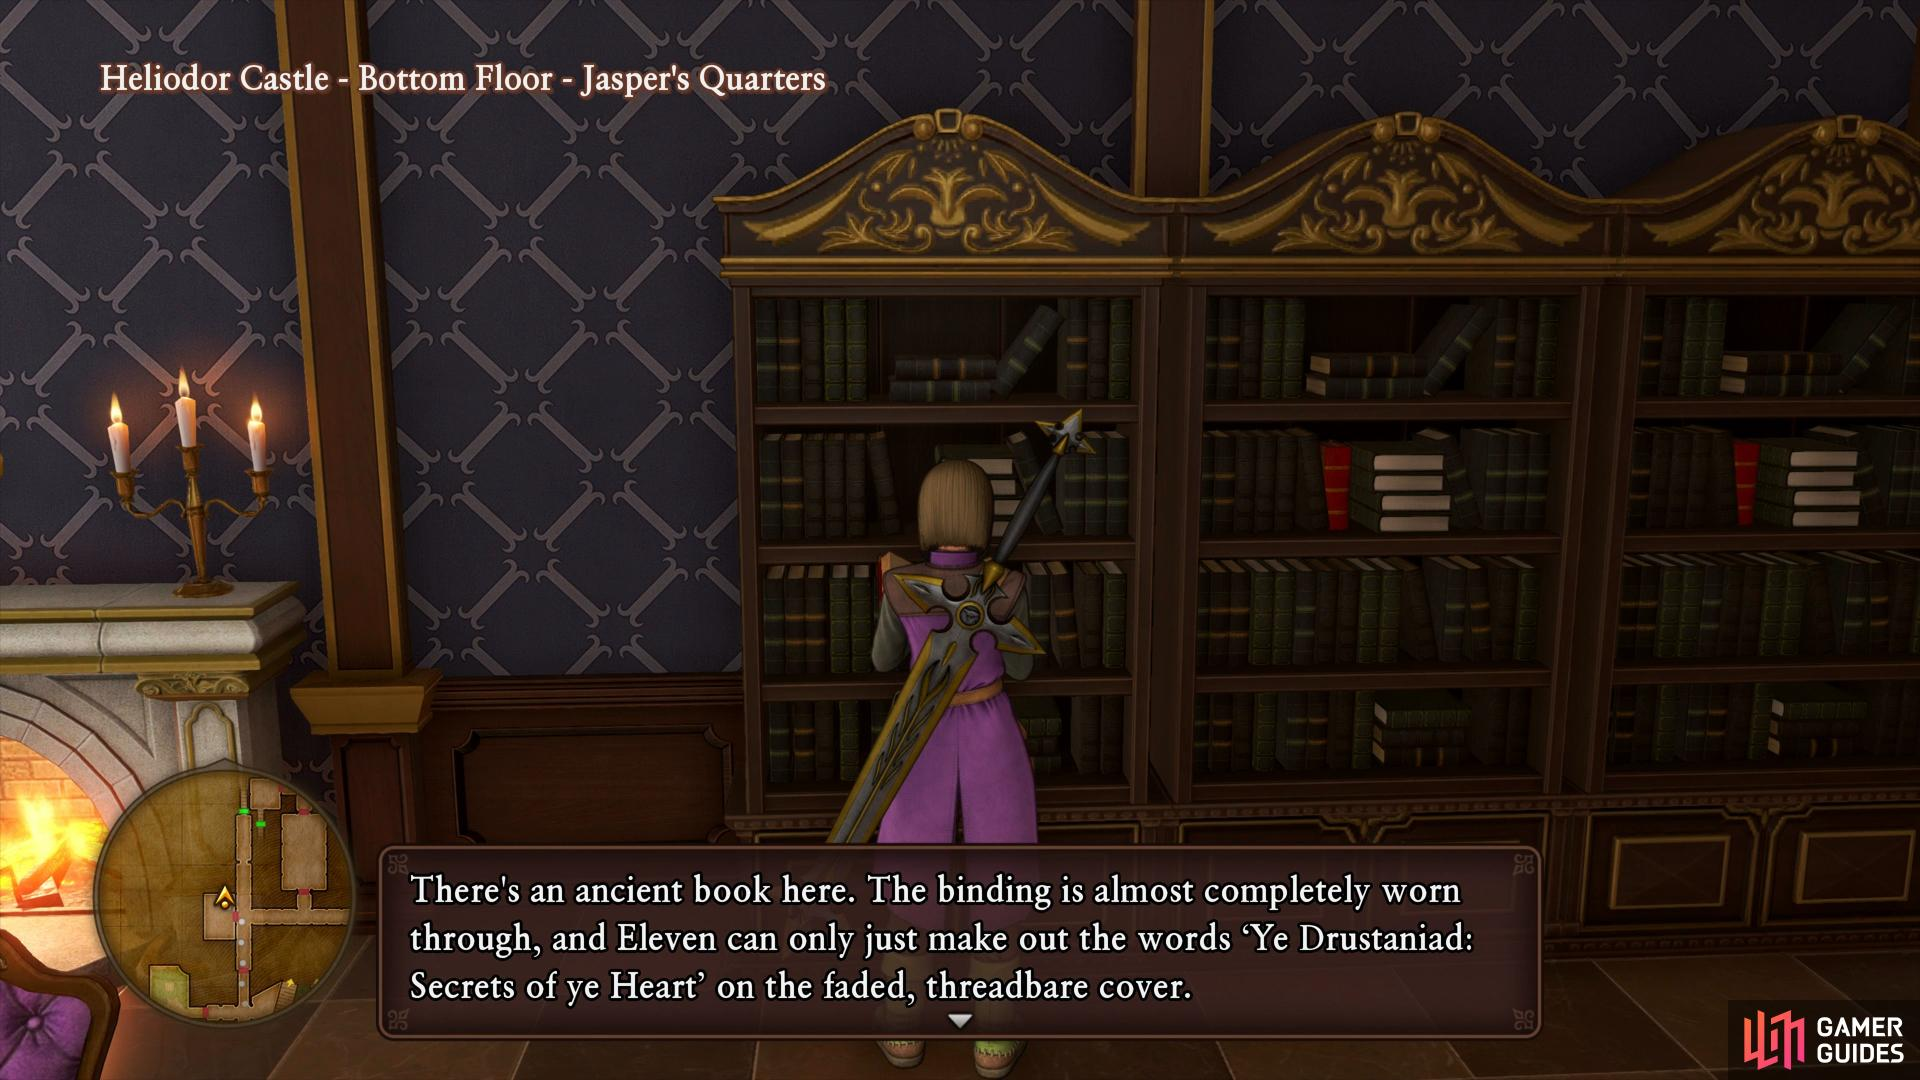 You'll find the first Tome of Quest 48 in Jasper's Quarters